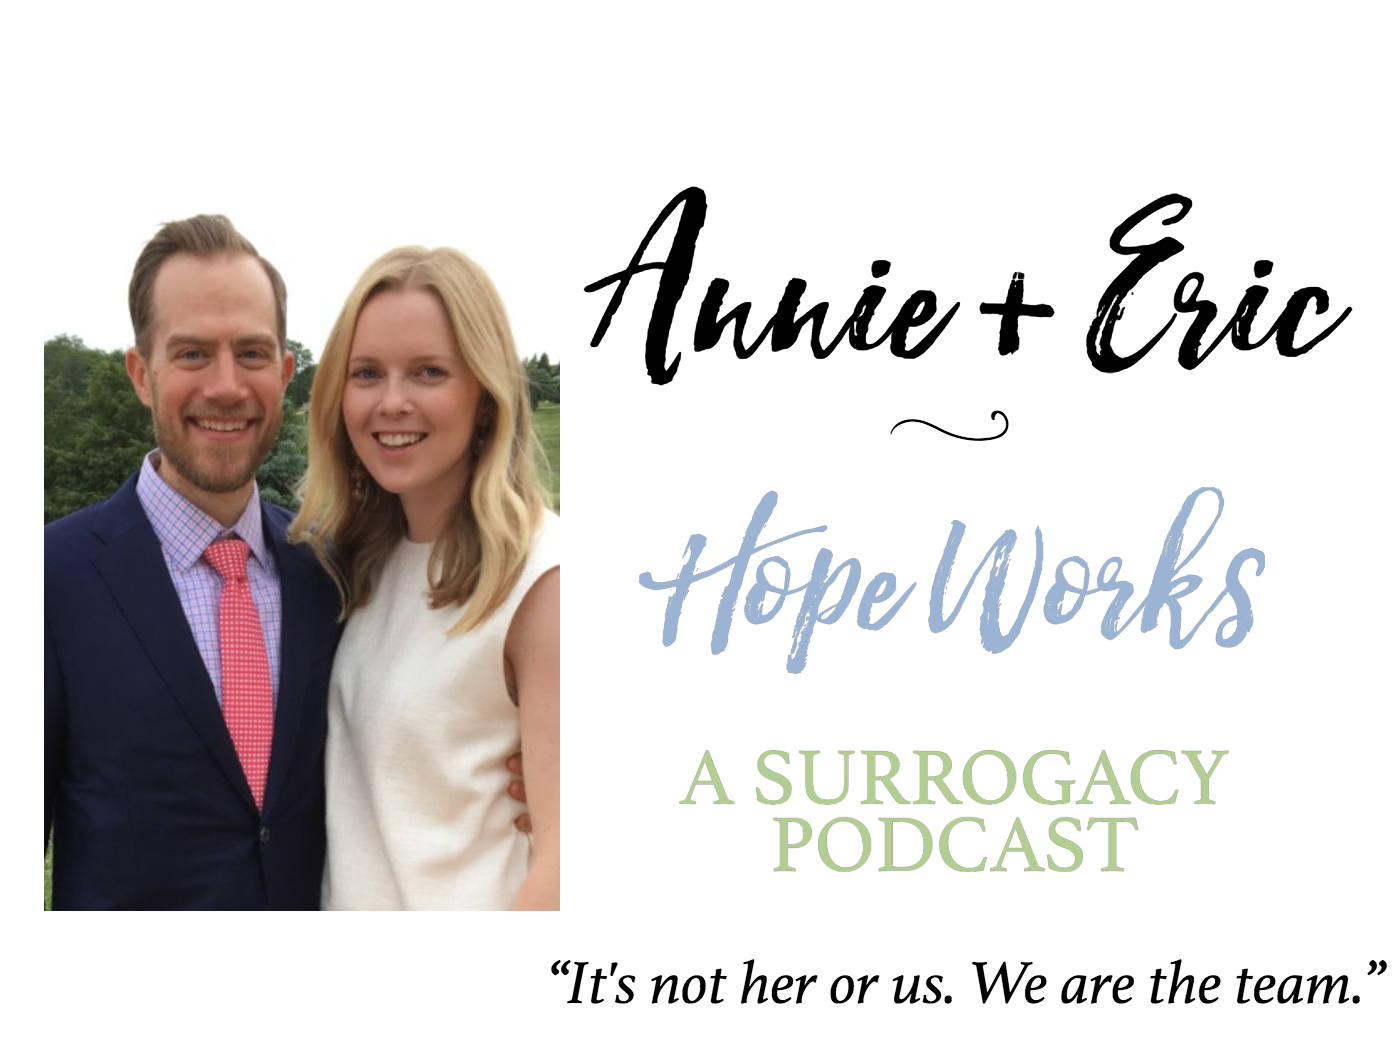 Annie and Erice share their story